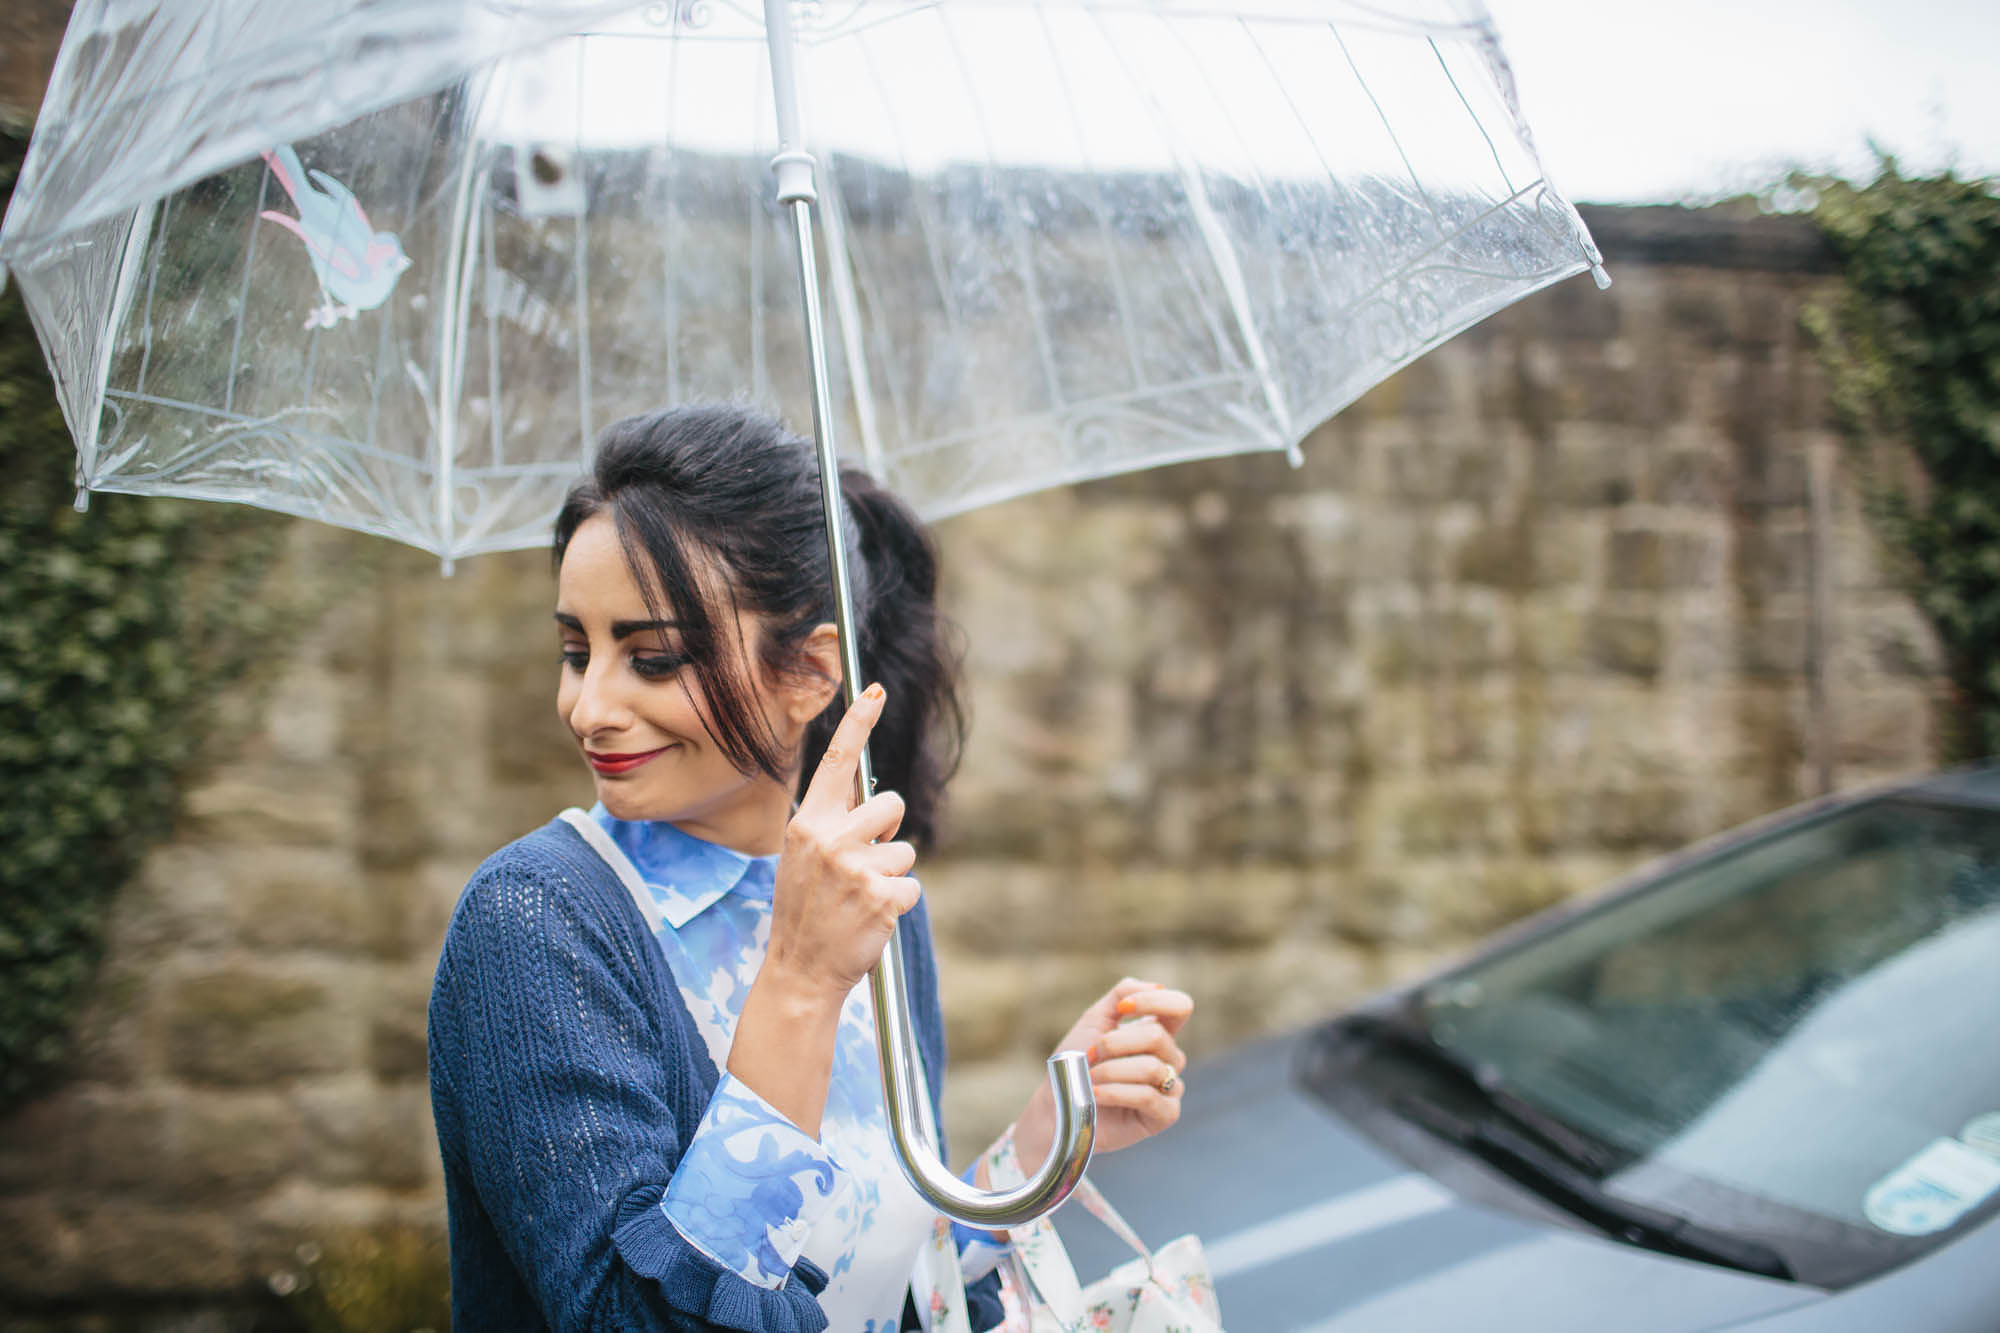 Bridesmaid holding an umbrella on her way to the wedding